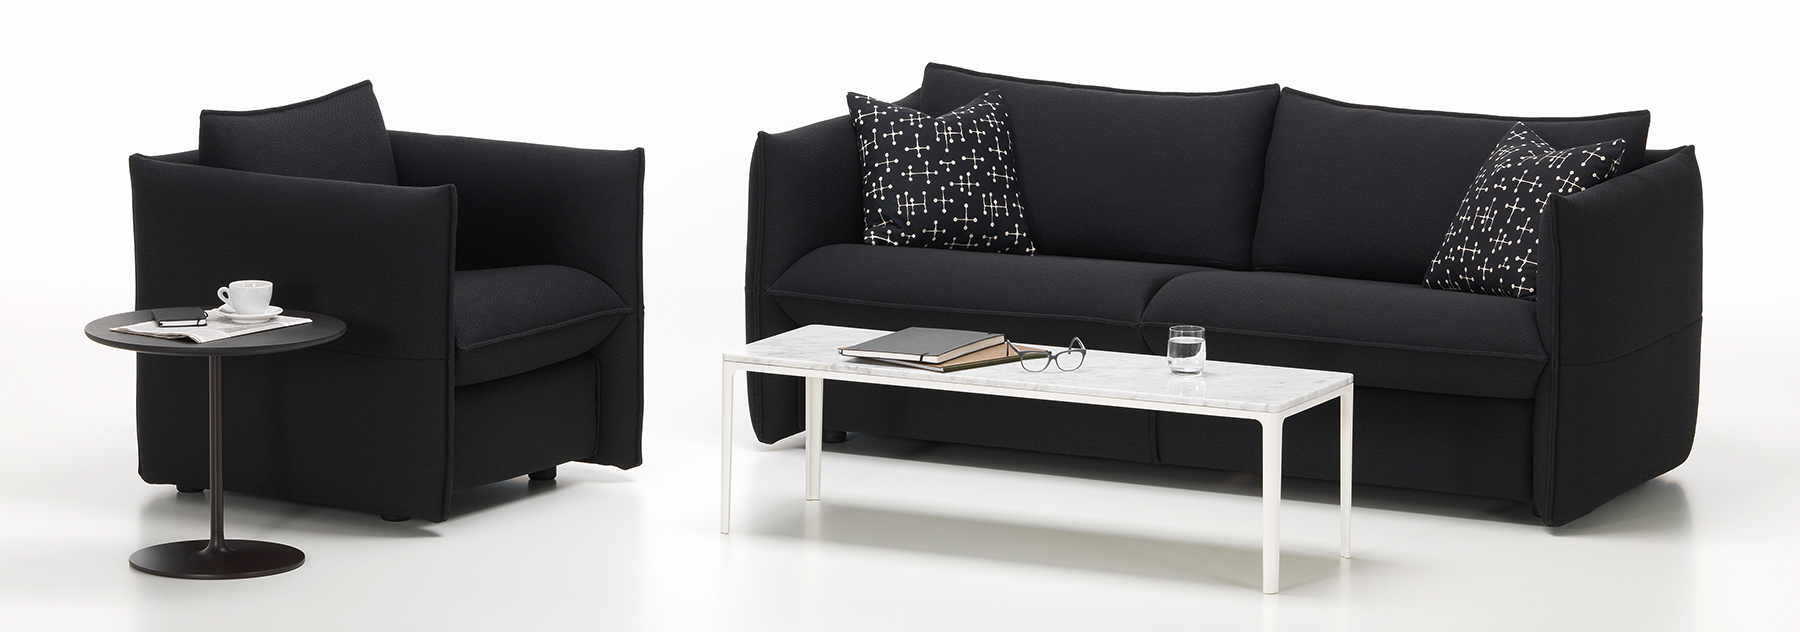 Vitra Mariposa Chair and Sofa